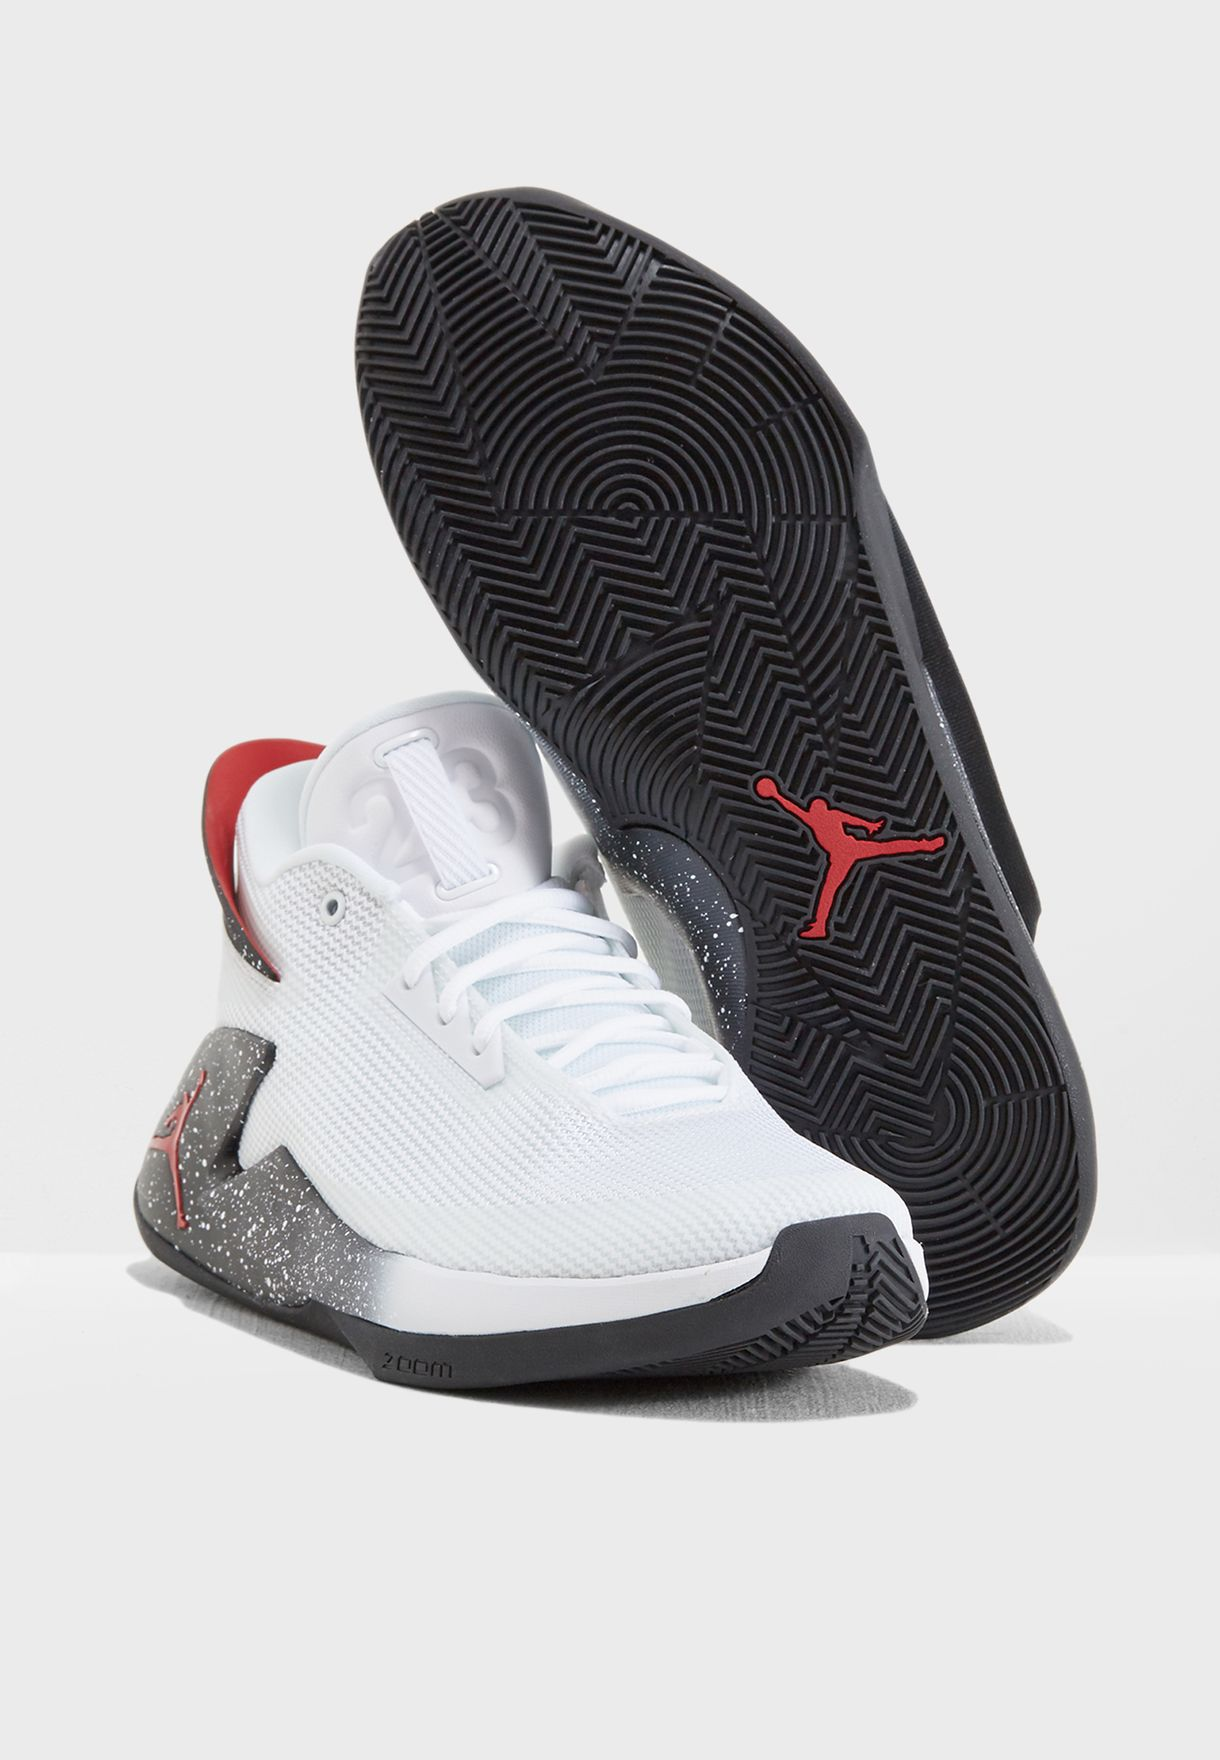 905f2e30c12a Shop Nike white Jordan Fly Lockdown AJ9499-100 for Men in UAE ...